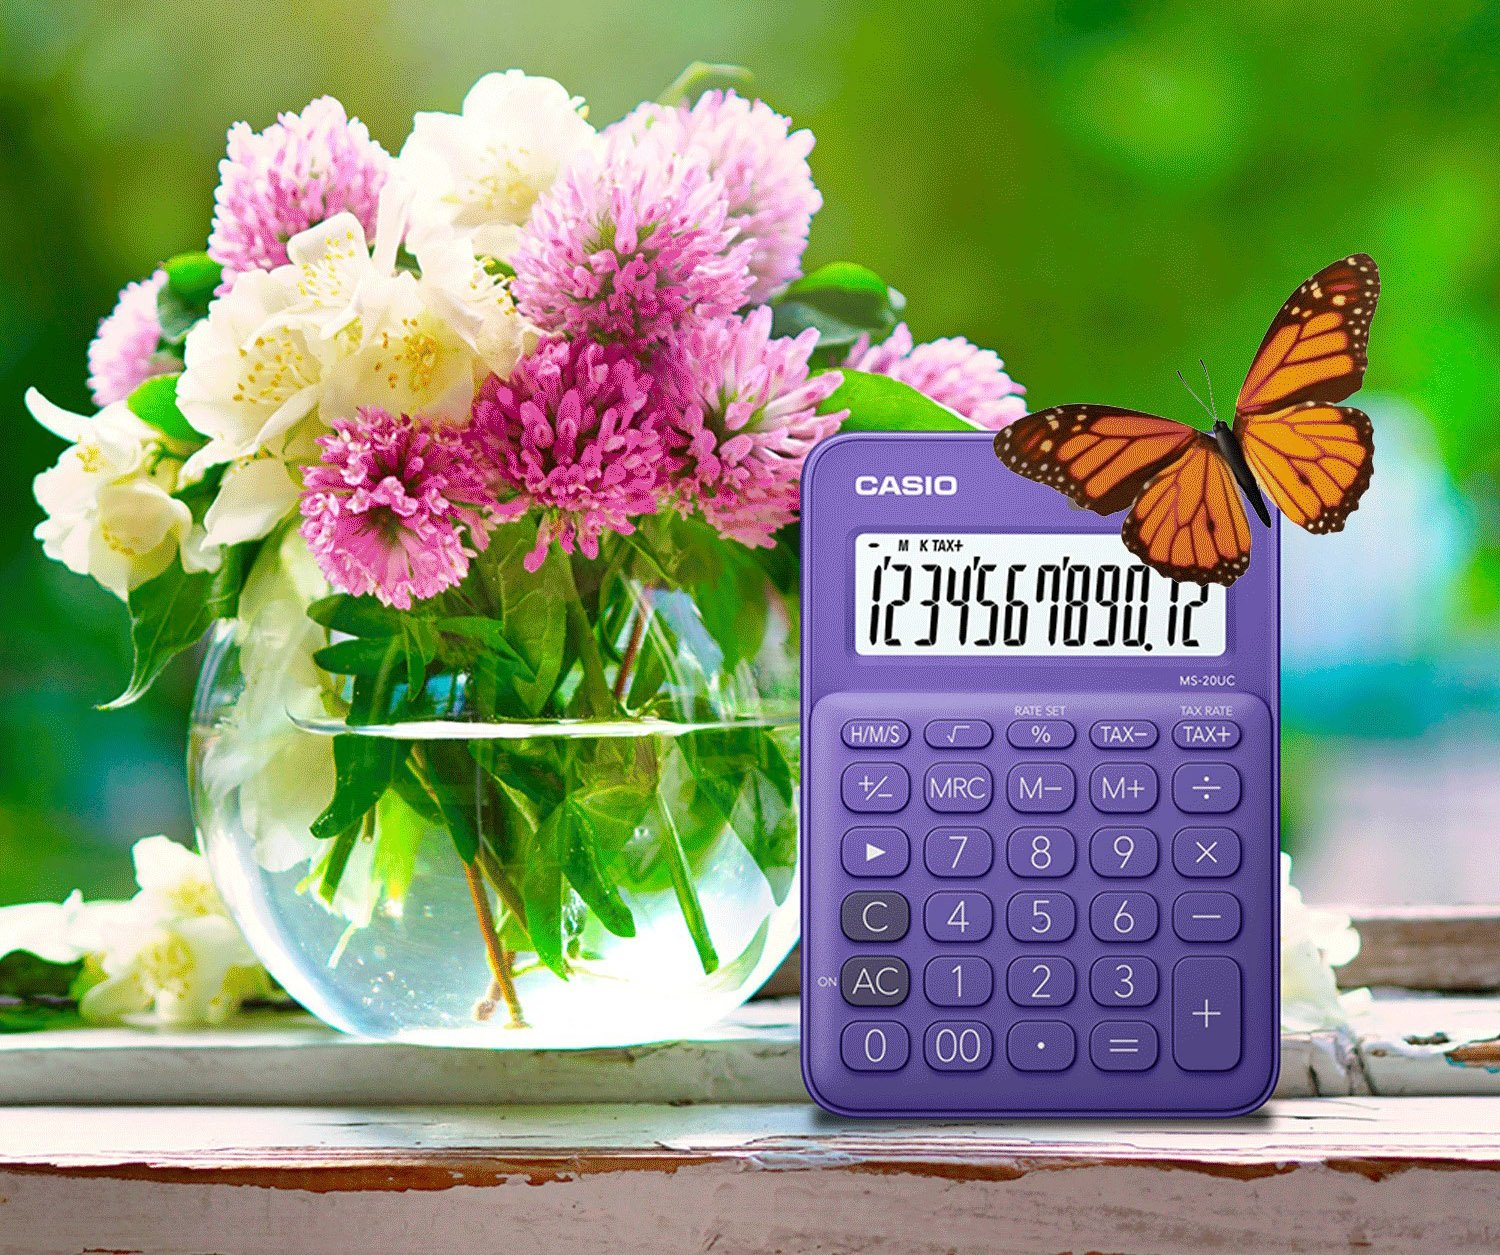 Casio Ms 20uc Pl Calculator 12 Digit Lcd Display With Rake Command Colorful Sl 310uc Orange Stylish Colour Purple Office Products